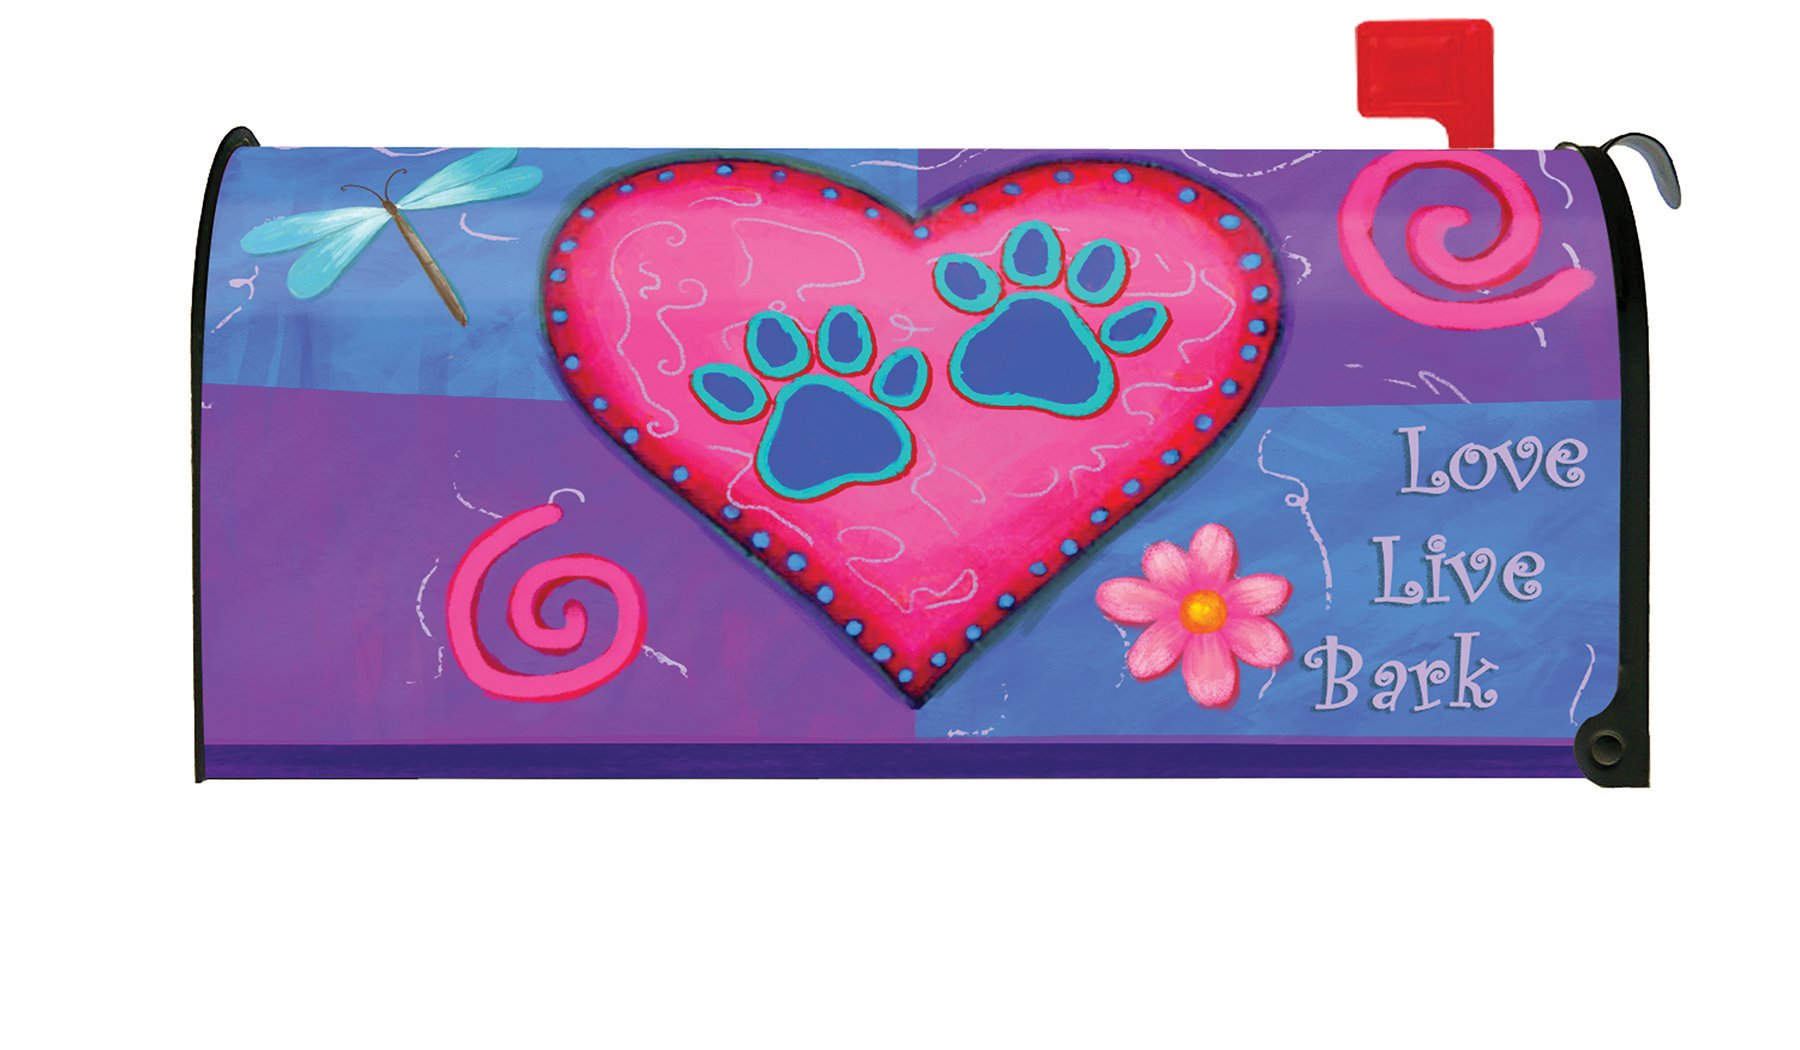 Toland Home Garden Love Live Bark Puppy Dog Heart Paw Magnetic Mailbox Cover